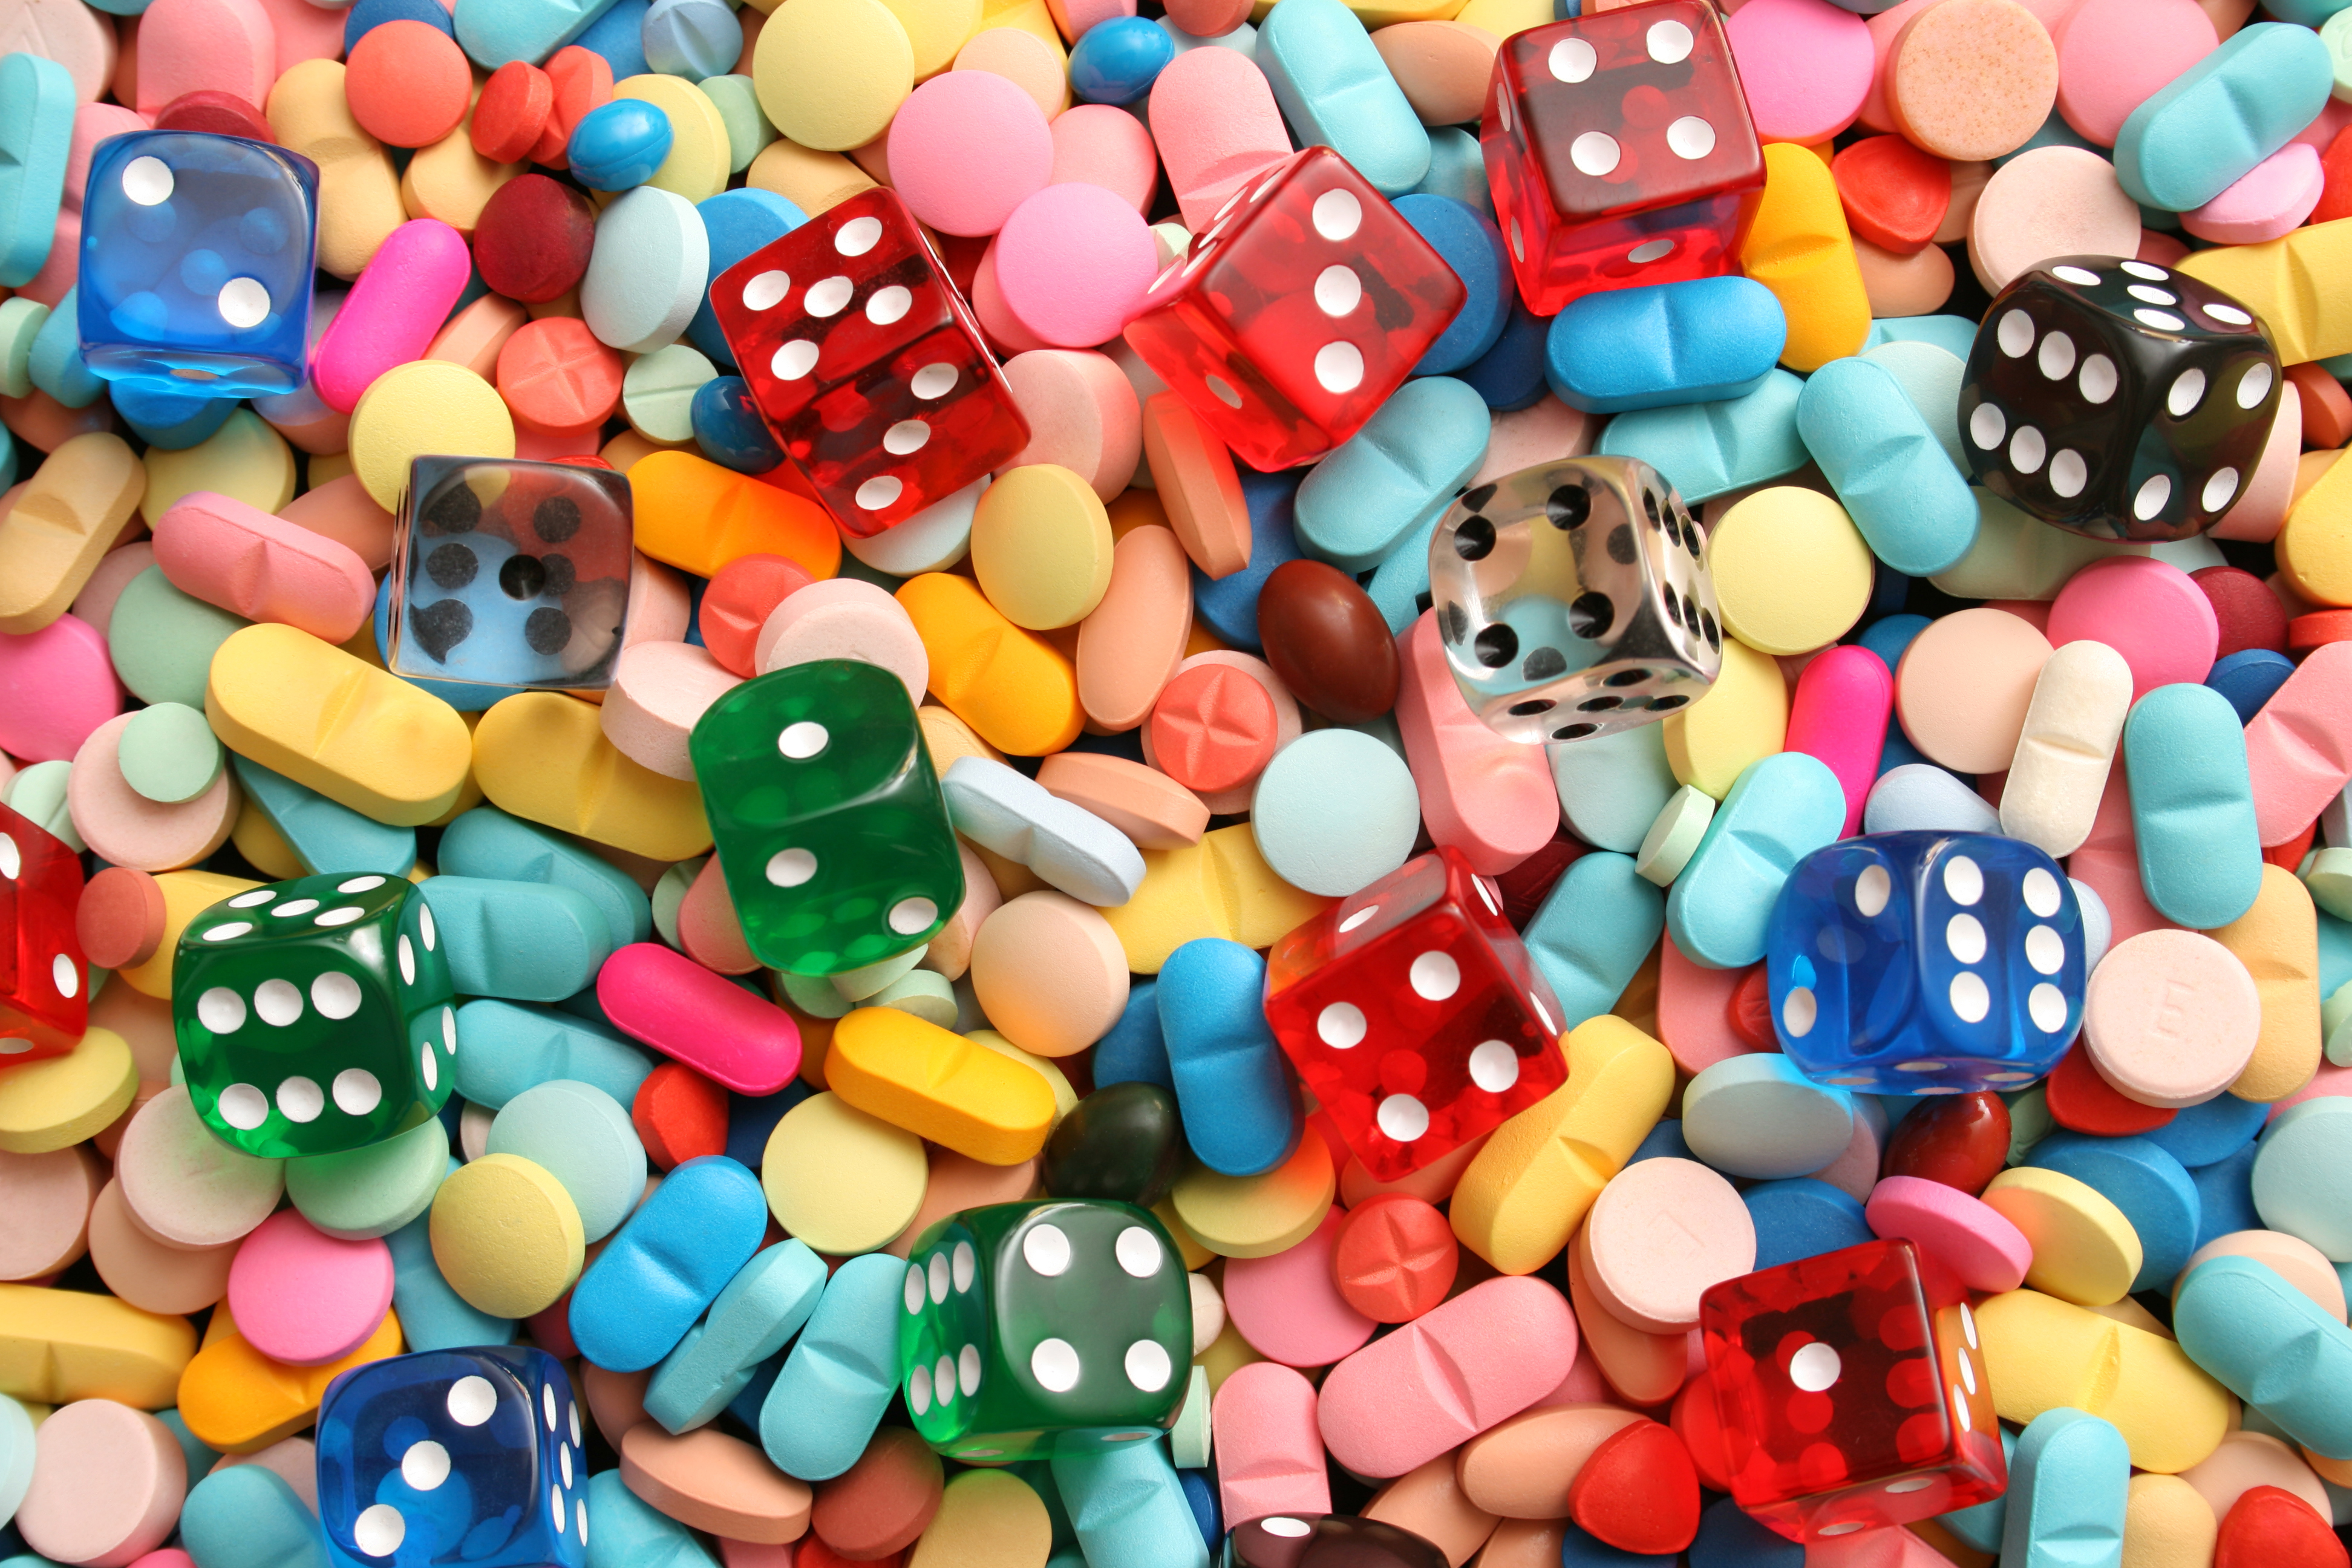 A multicolored array of pills, mixed in with dice to illustrate the risk of untested dietary supplements.